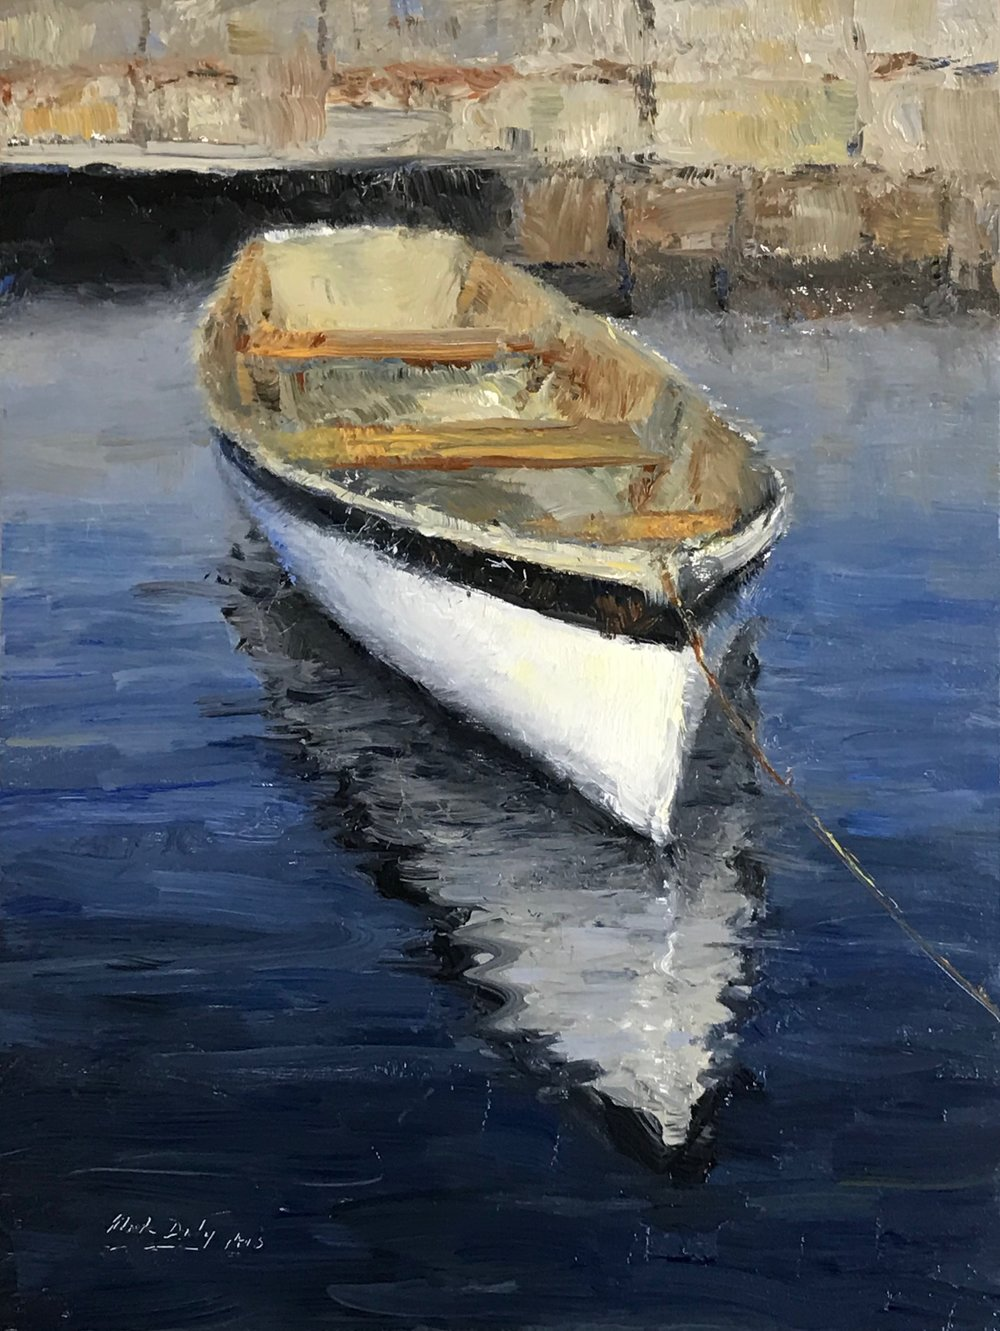 White Boat Reflections, Oil 12 x 9. Signed lower left by Mark Daly. Available at OPA National Show.